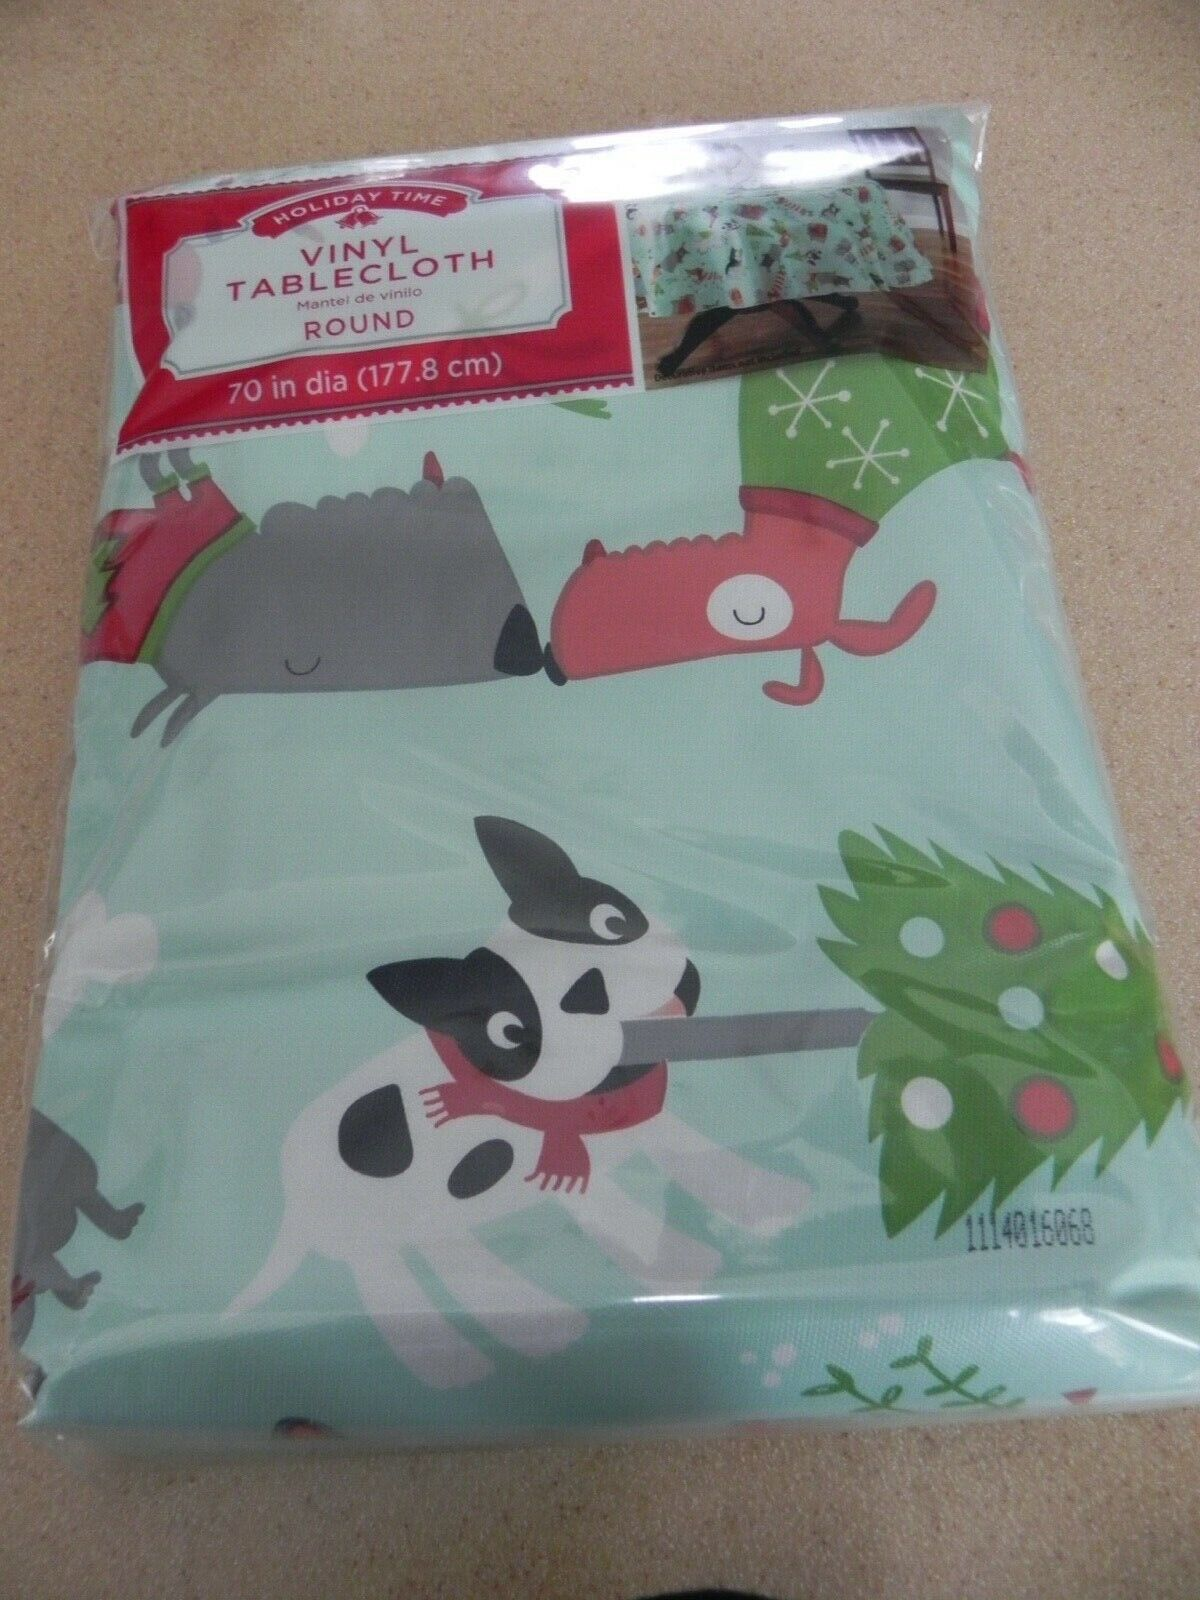 NIP Christmas Tablecloth Vinyl Cat Dog Puppy Kittley 70 Round NEW - $4.00